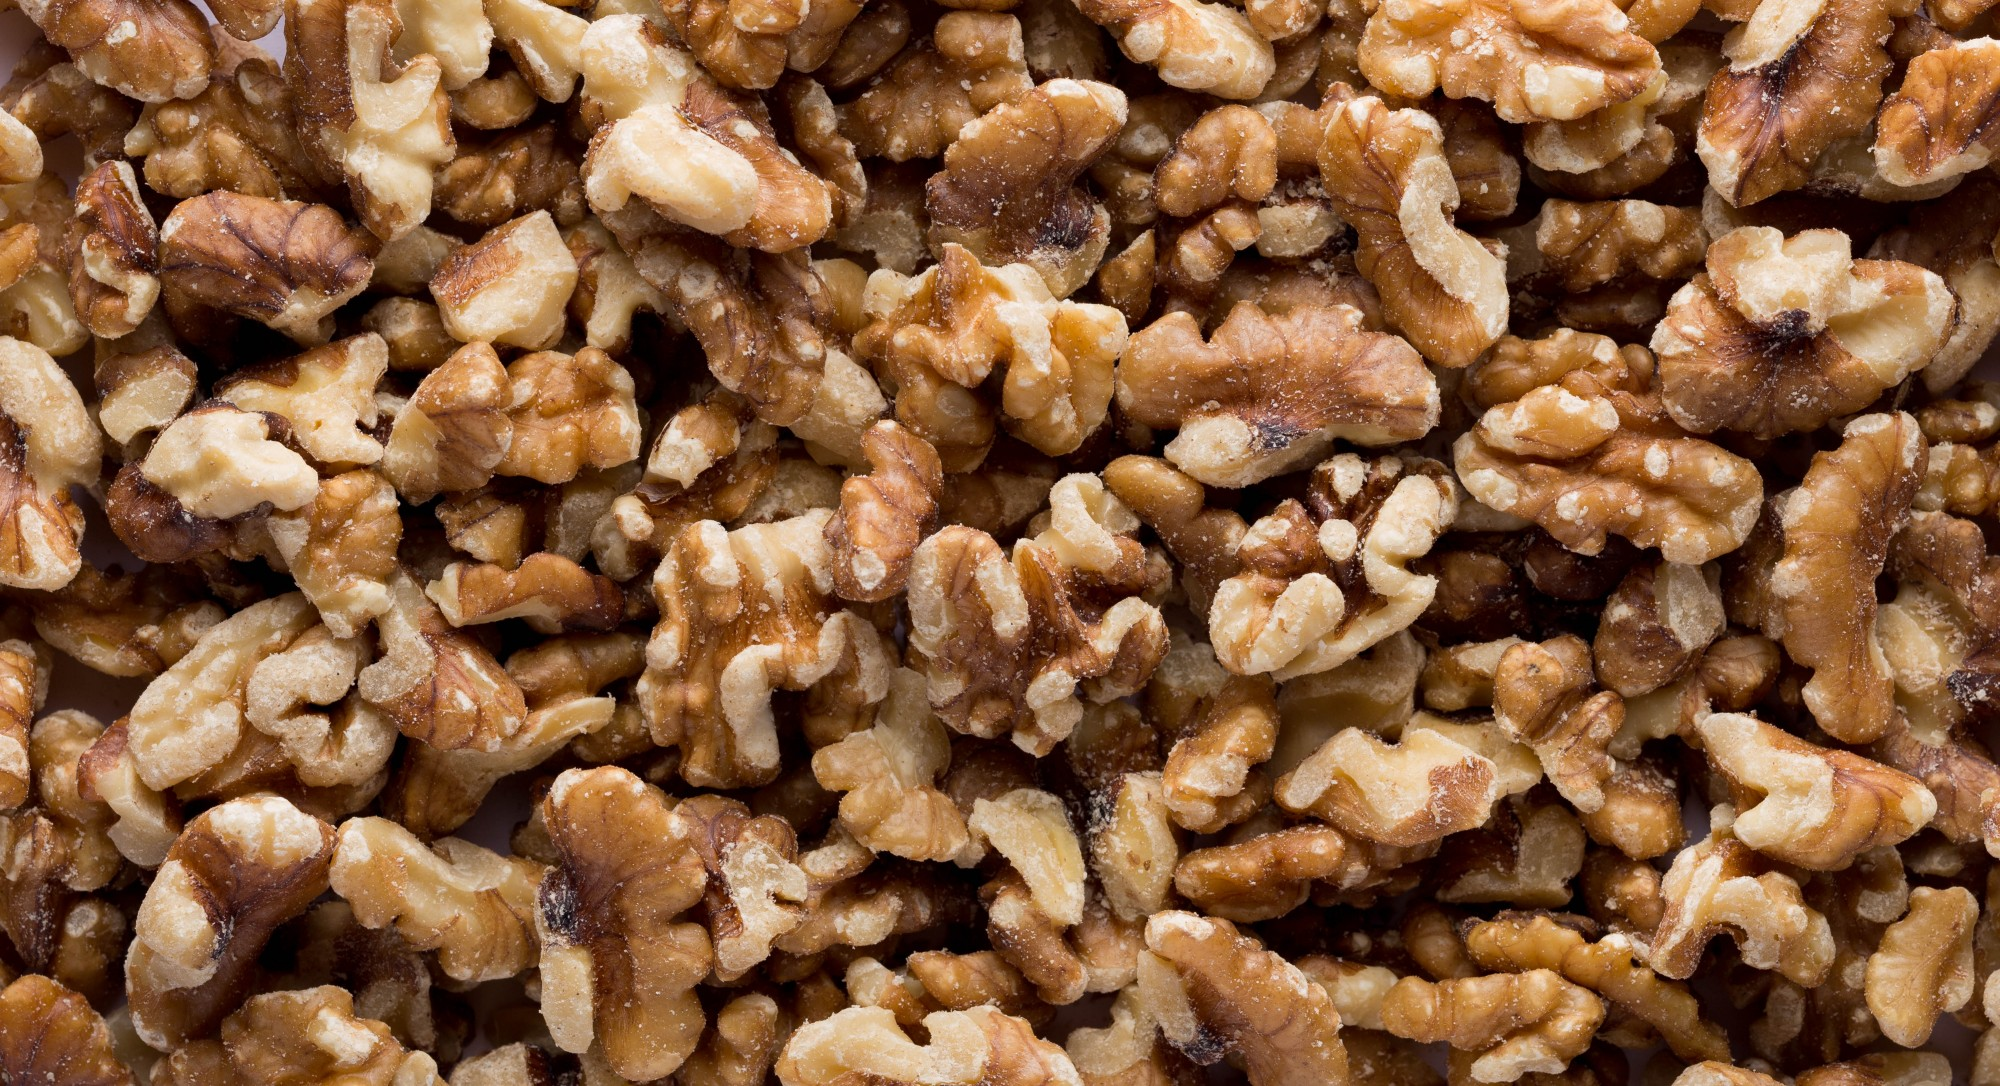 Ingredient of the Week: When It Comes to Health, What Can't Walnuts Do?